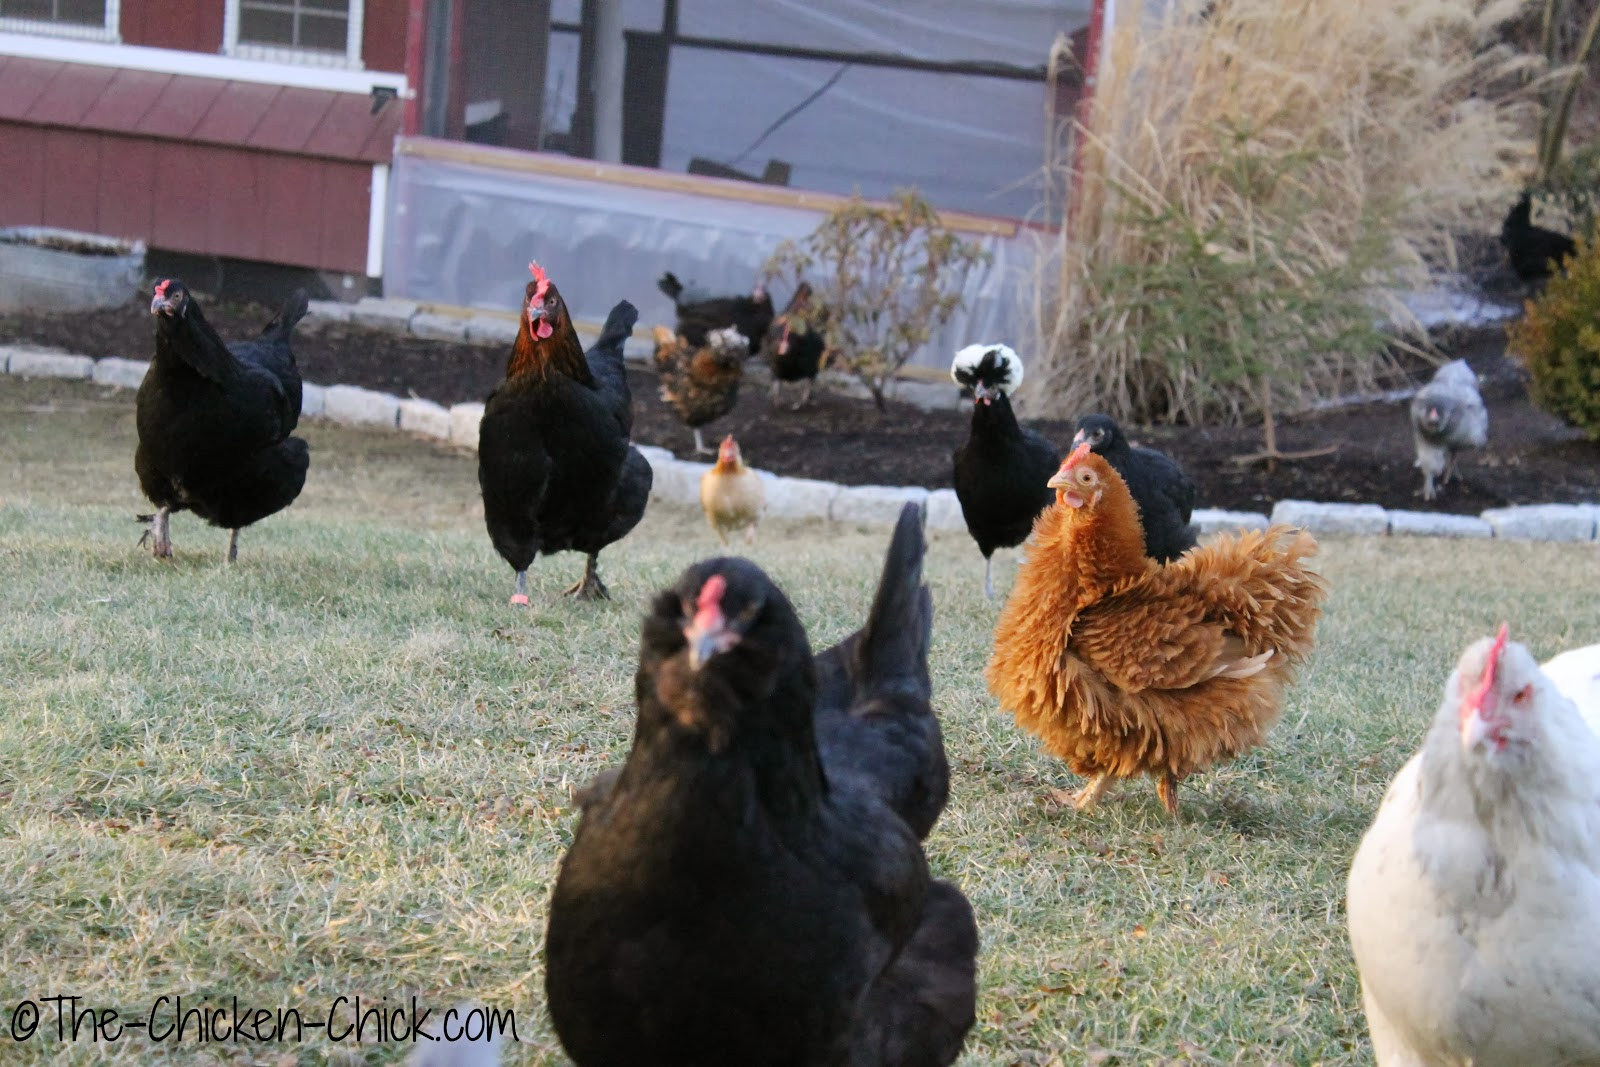 Some of my flock members, enjoying a pre-snow stroll